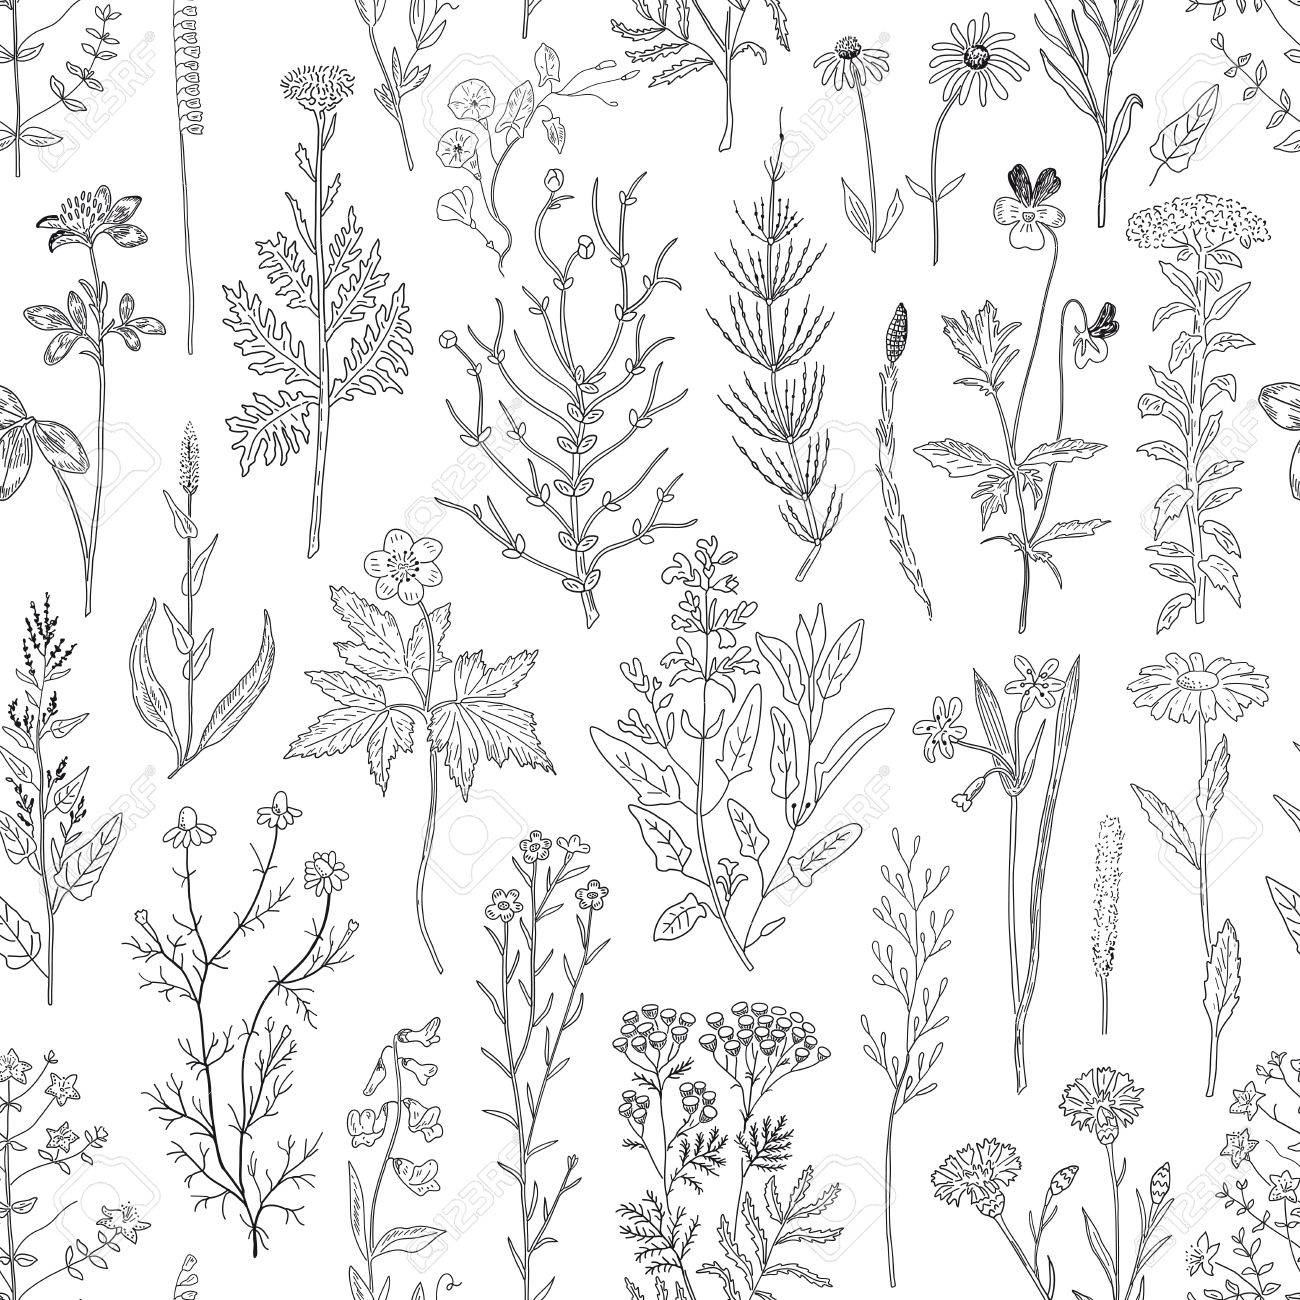 Hand drawn sketch herbs and flowers vintage seamless pattern. Vector illustration background. - 68881817